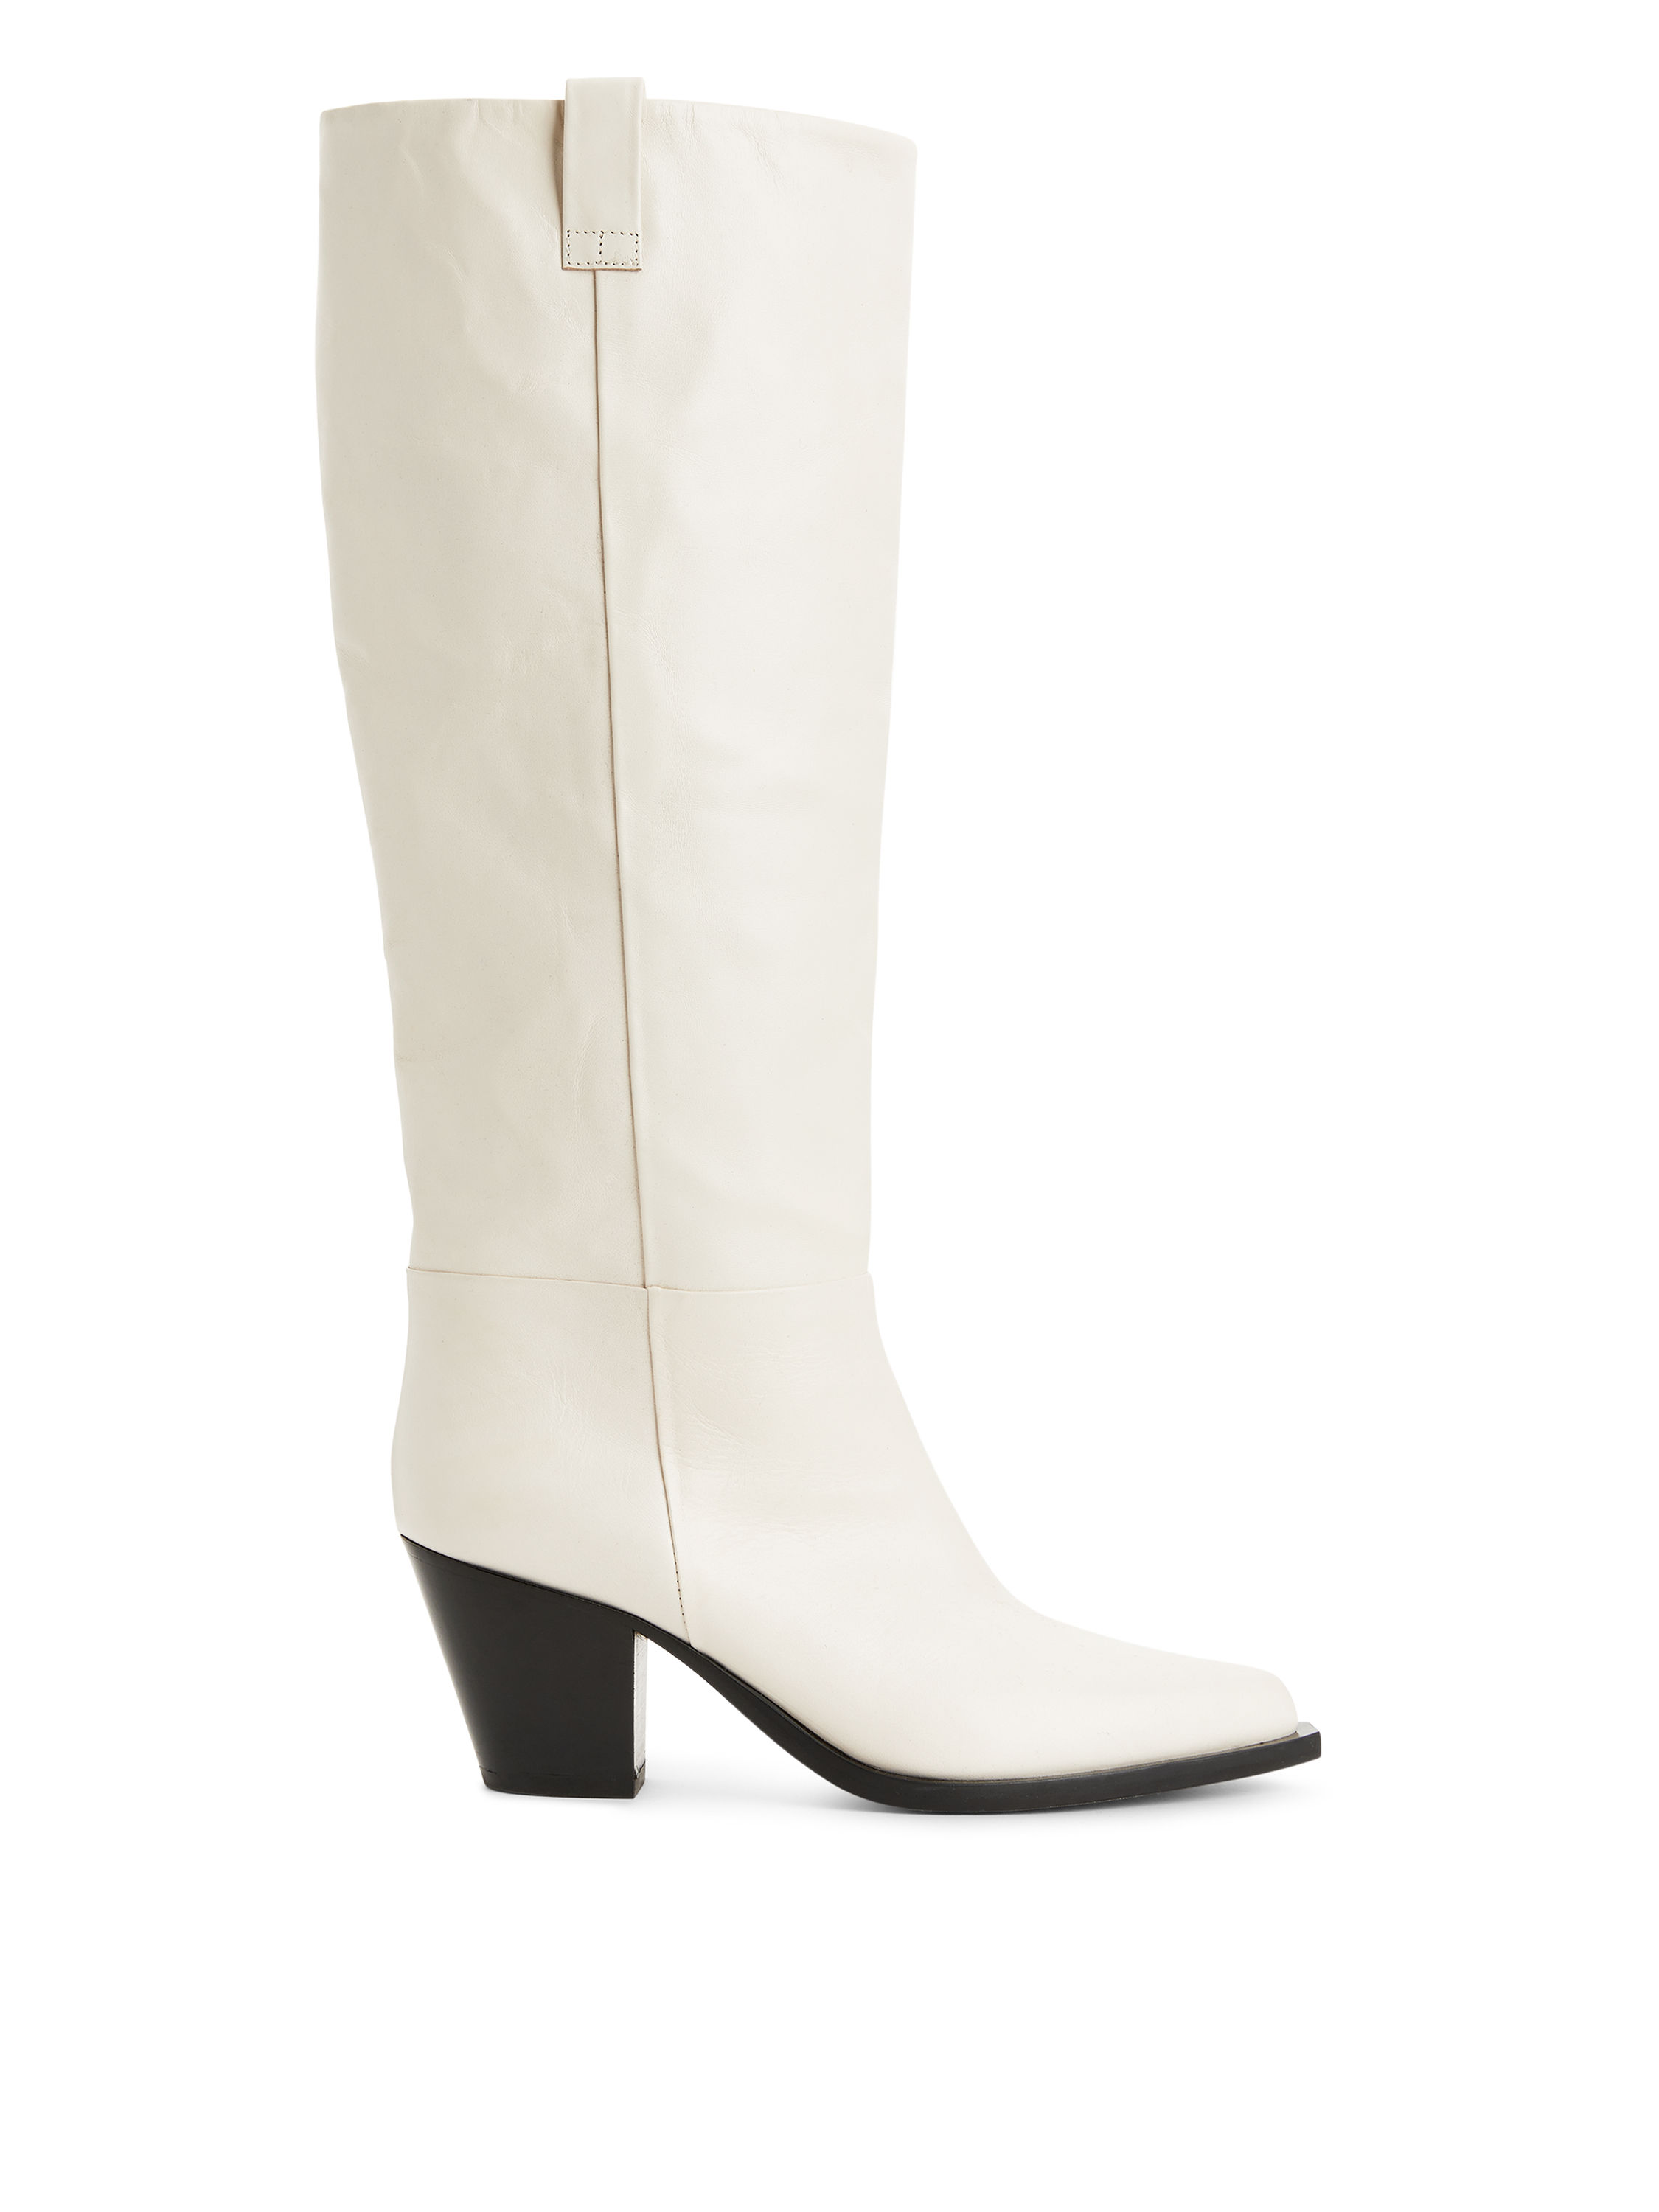 Fabric Swatch image of Arket angled heel high leather boots in white